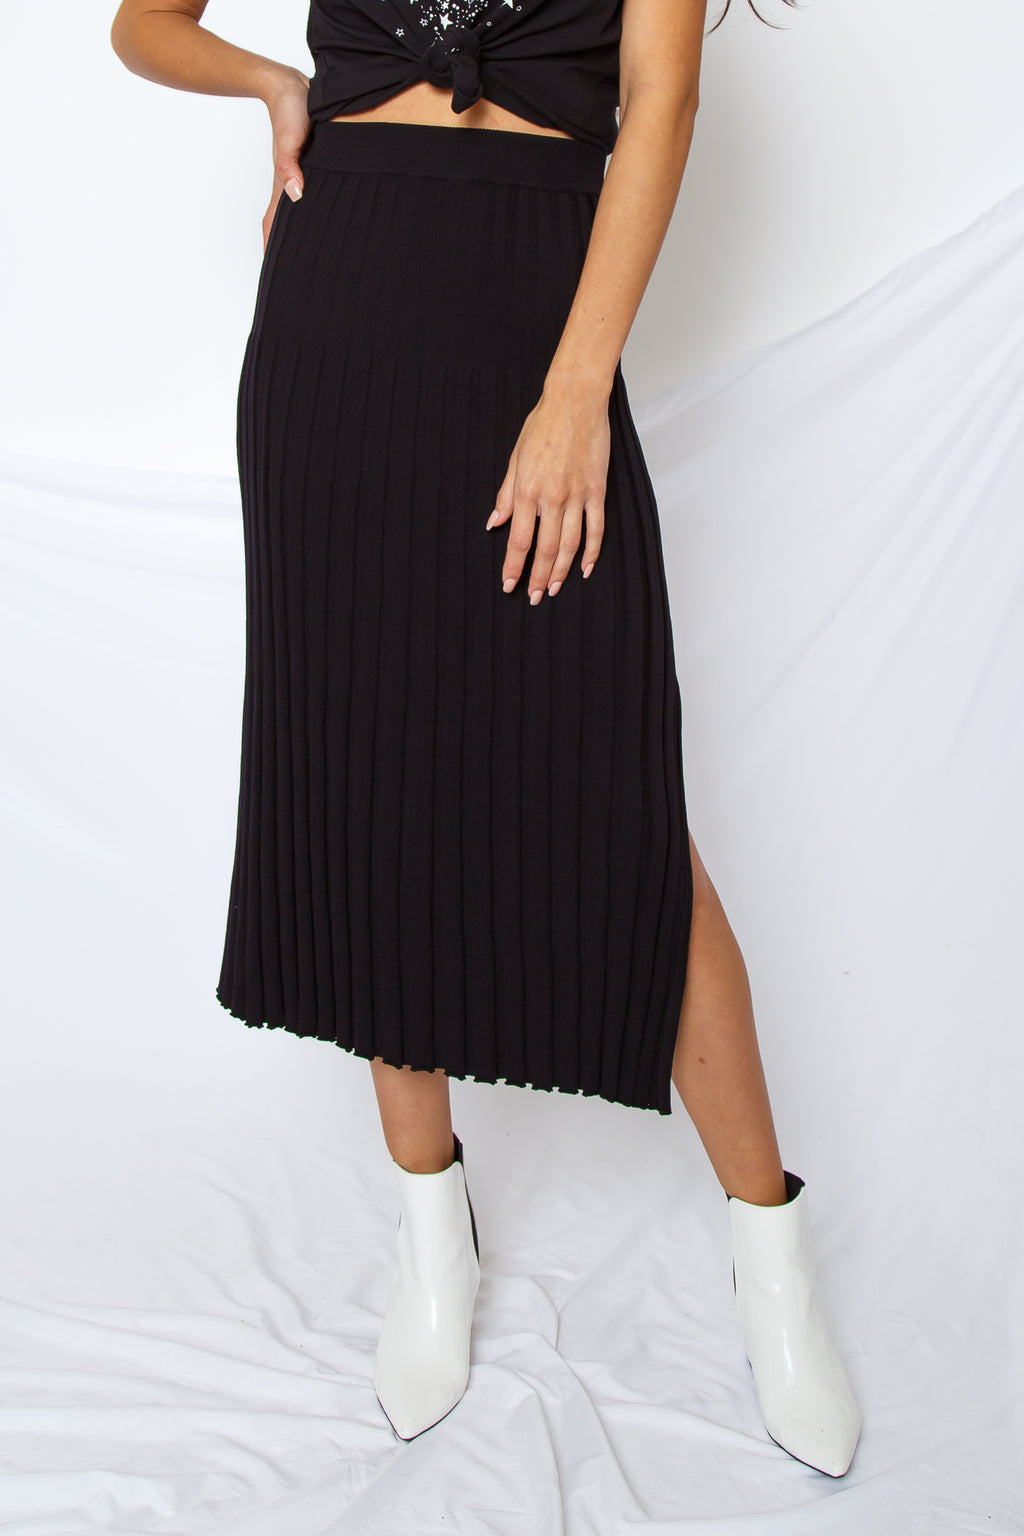 Downtown Midi Skirt